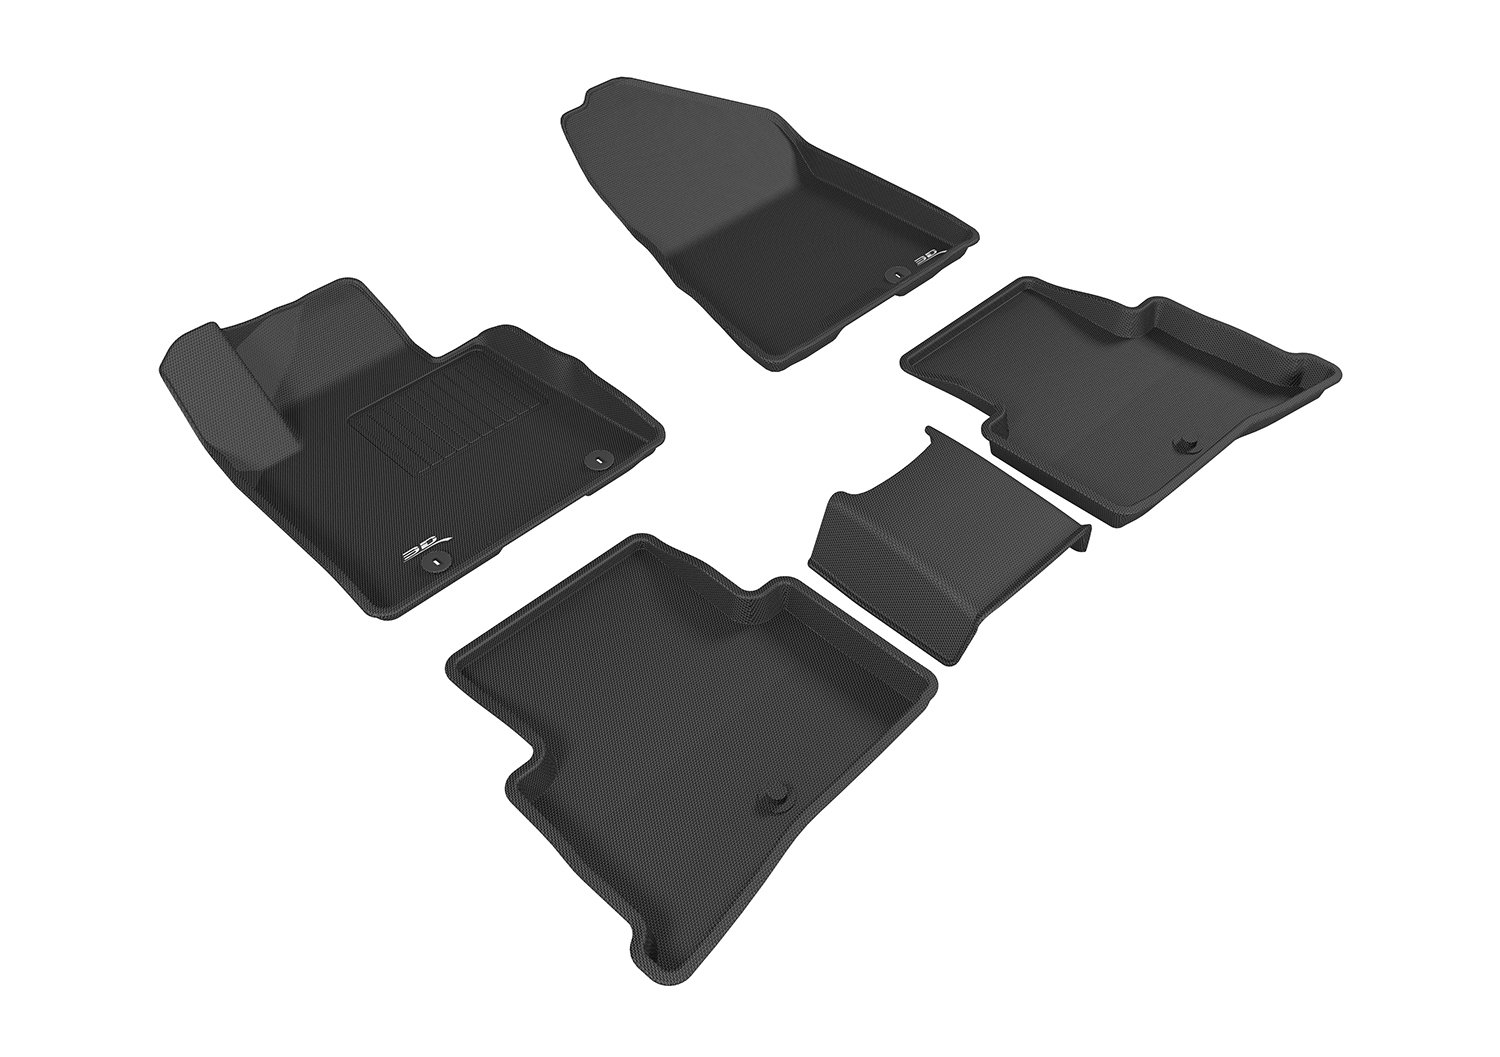 3D MAXpider Complete Set Custom Fit All-Weather Floor Mat for Select Kia Sportage Models Black Kagu Rubber